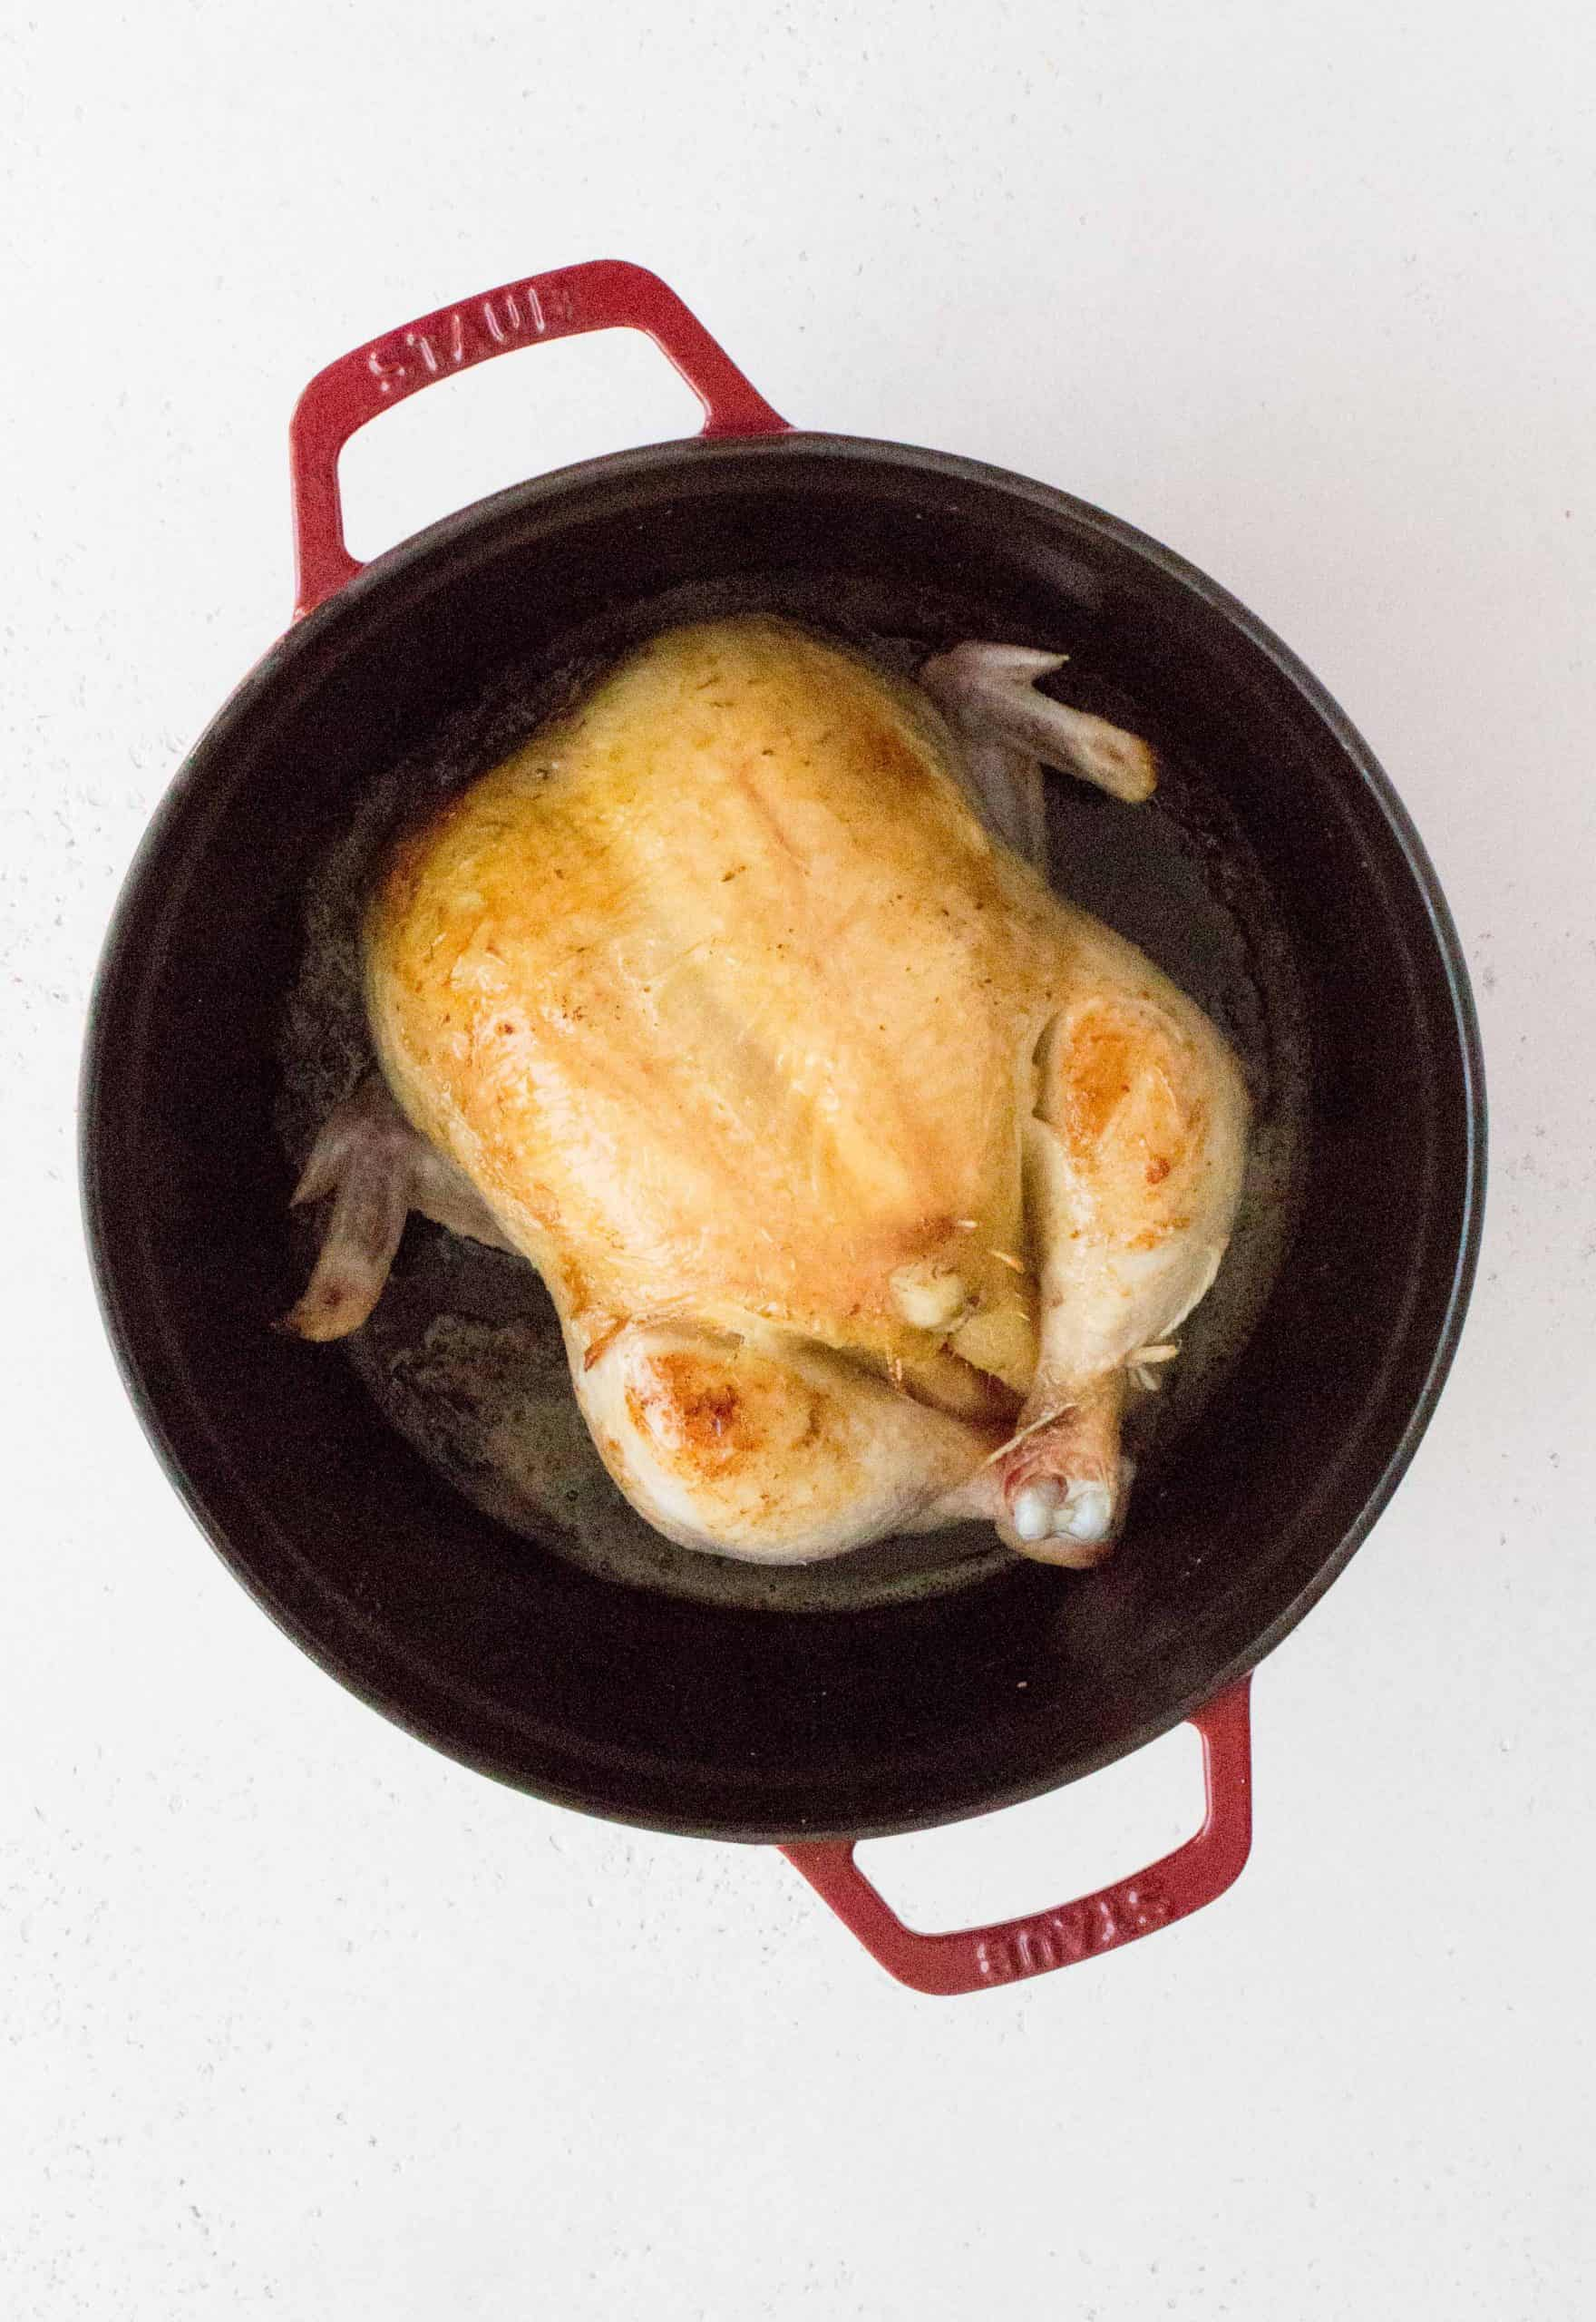 On medium-high heat, add in the olive oil to the Dutch oven, salt and brown the whole chicken, starting with breast side down then flipping it around 5-10 minutes or until the skin has turned golden brown.